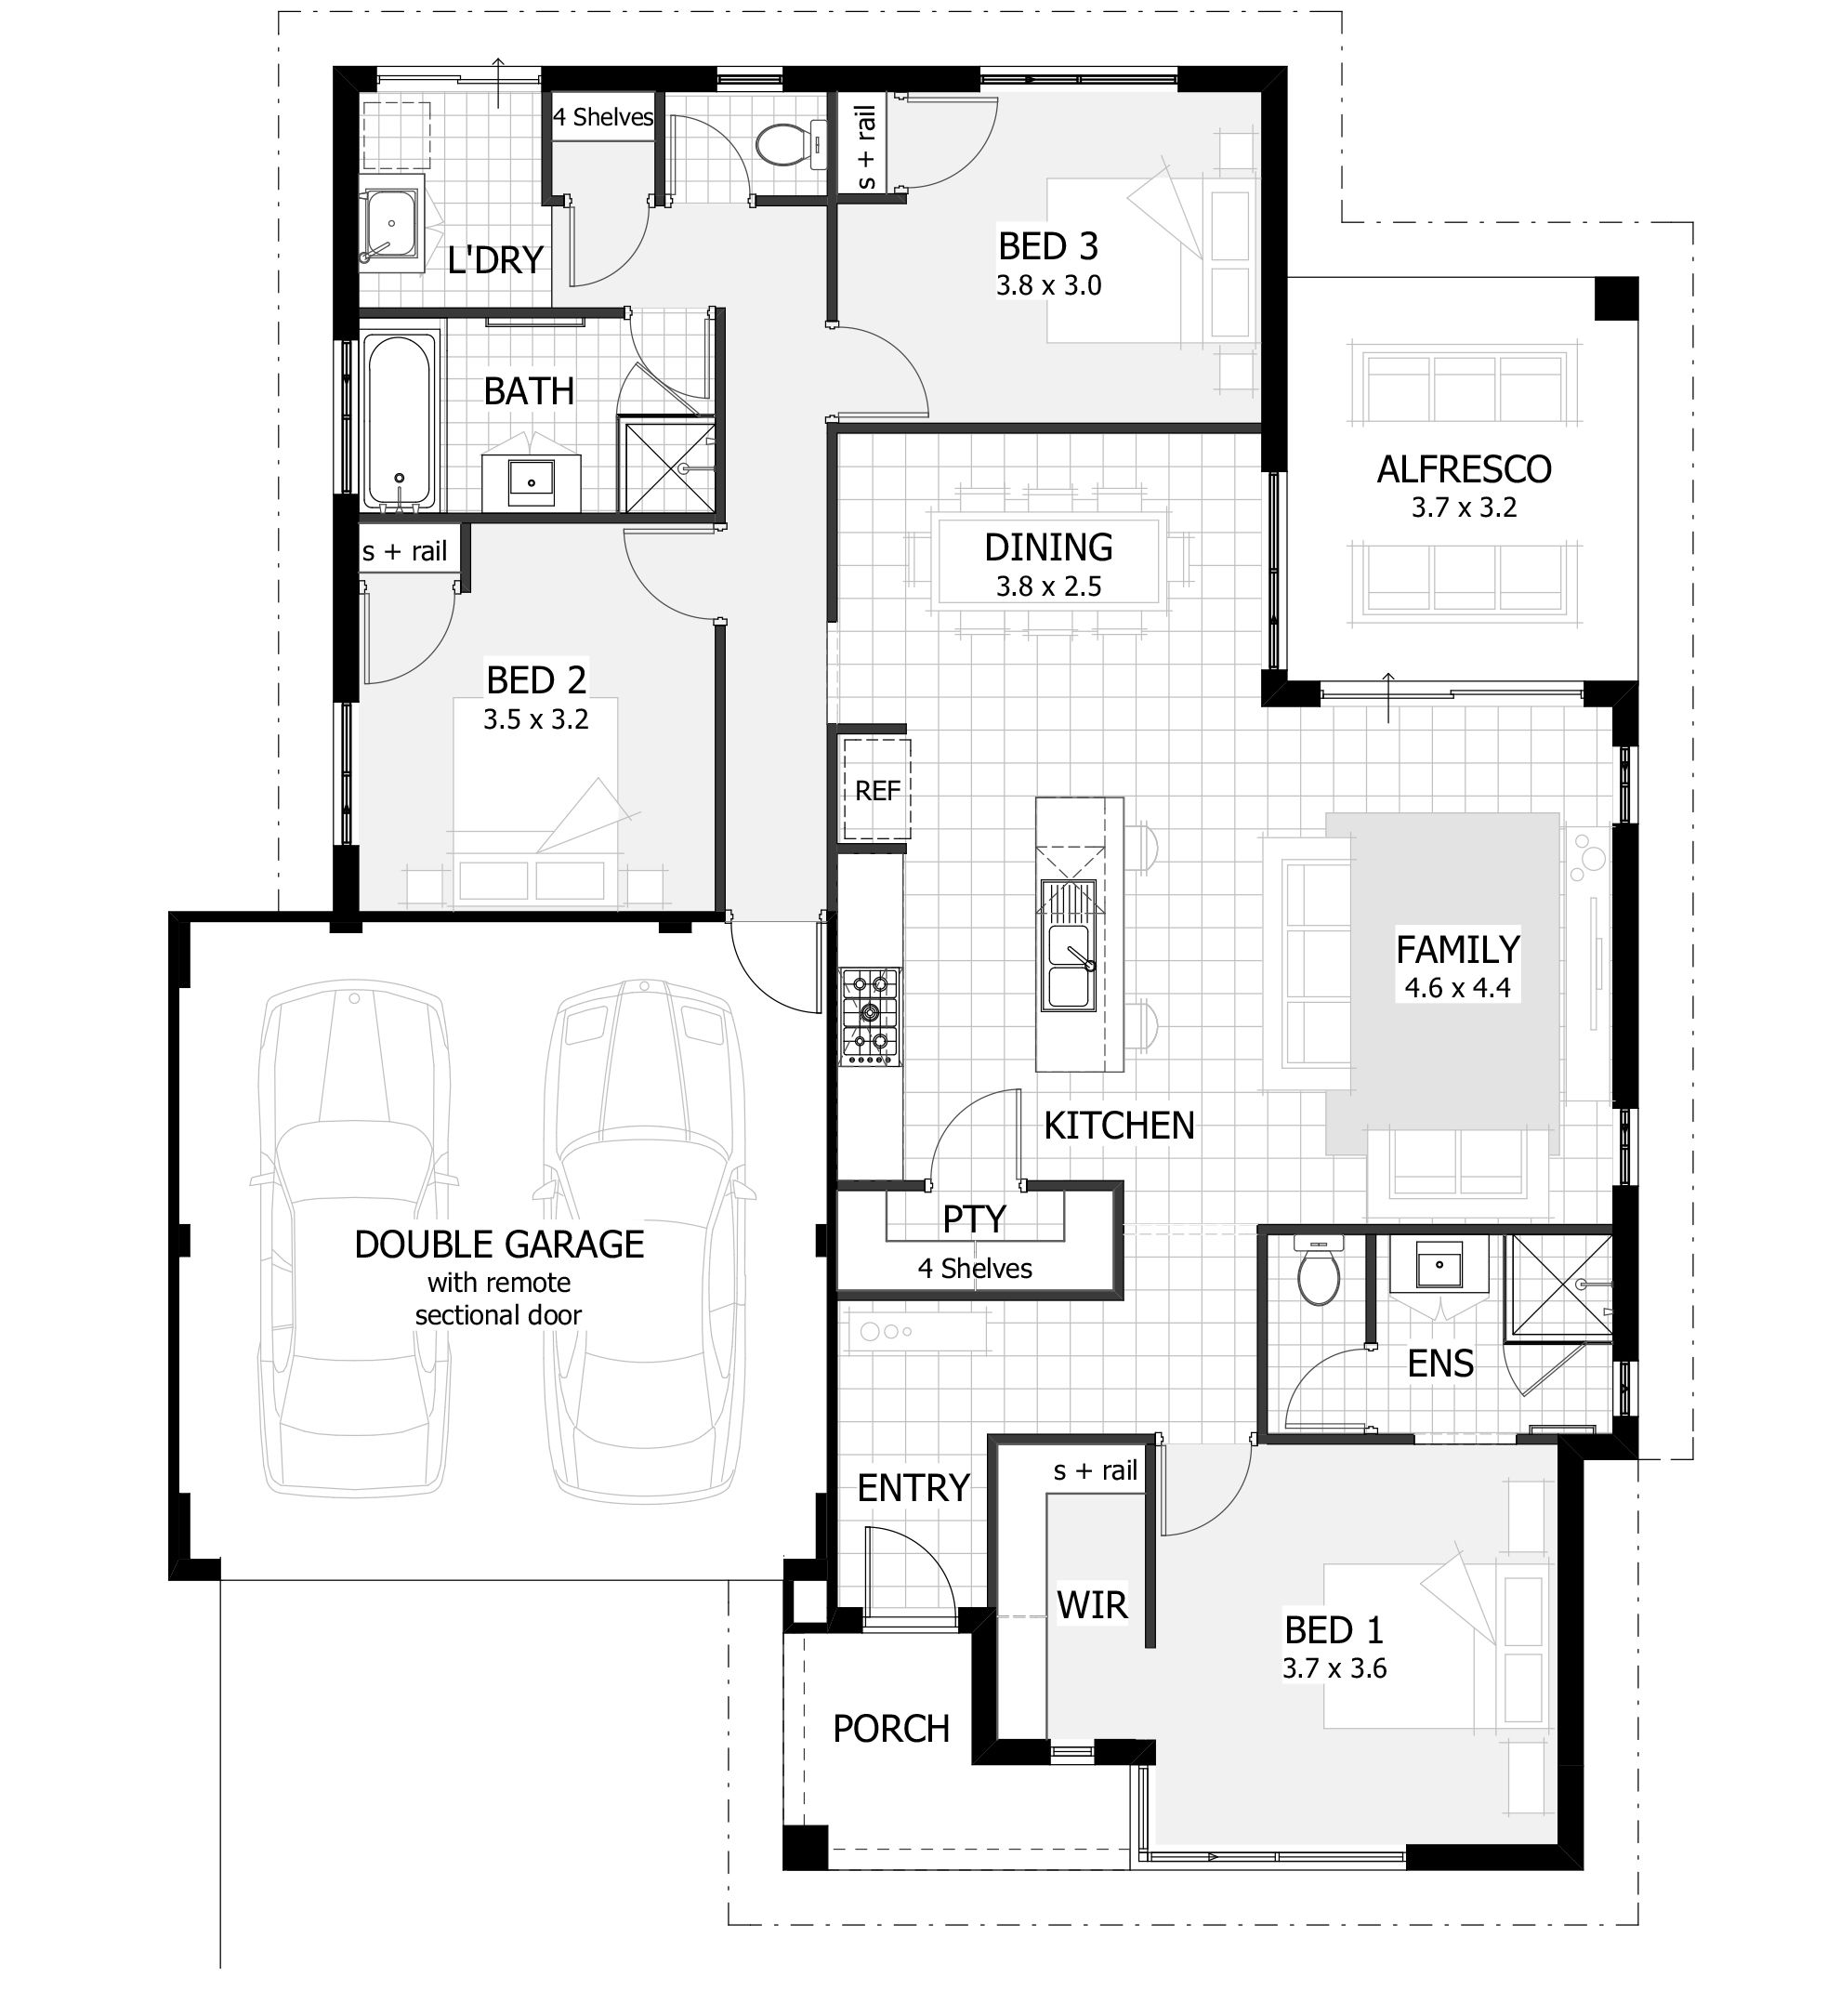 3 bedroom home design plans.  Bedroom House Plans Amp Home Designs Celebration Homes And Floor Quickly Easily Simply Draw Your Plan Best Free Design Idea Inspiration We have a huge selection of available right across